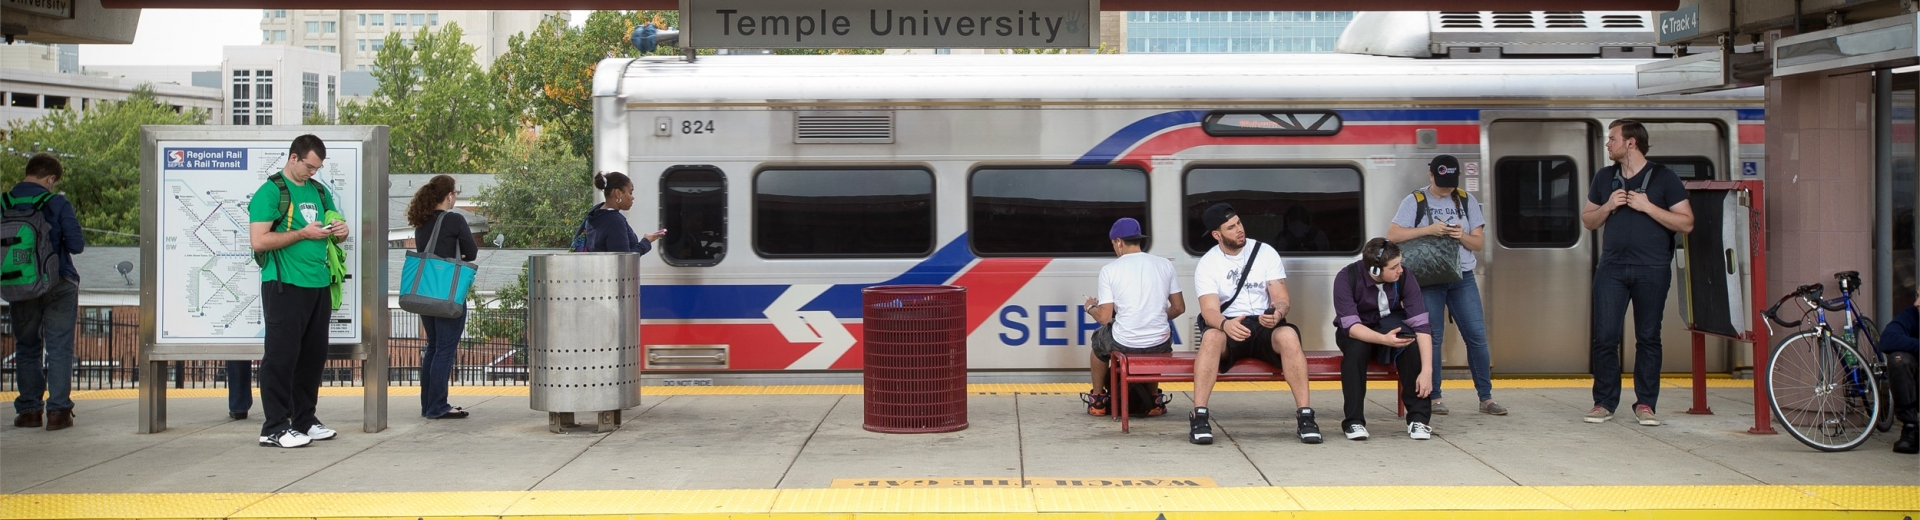 Temple University students standing on the platform at the SEPTA train station.